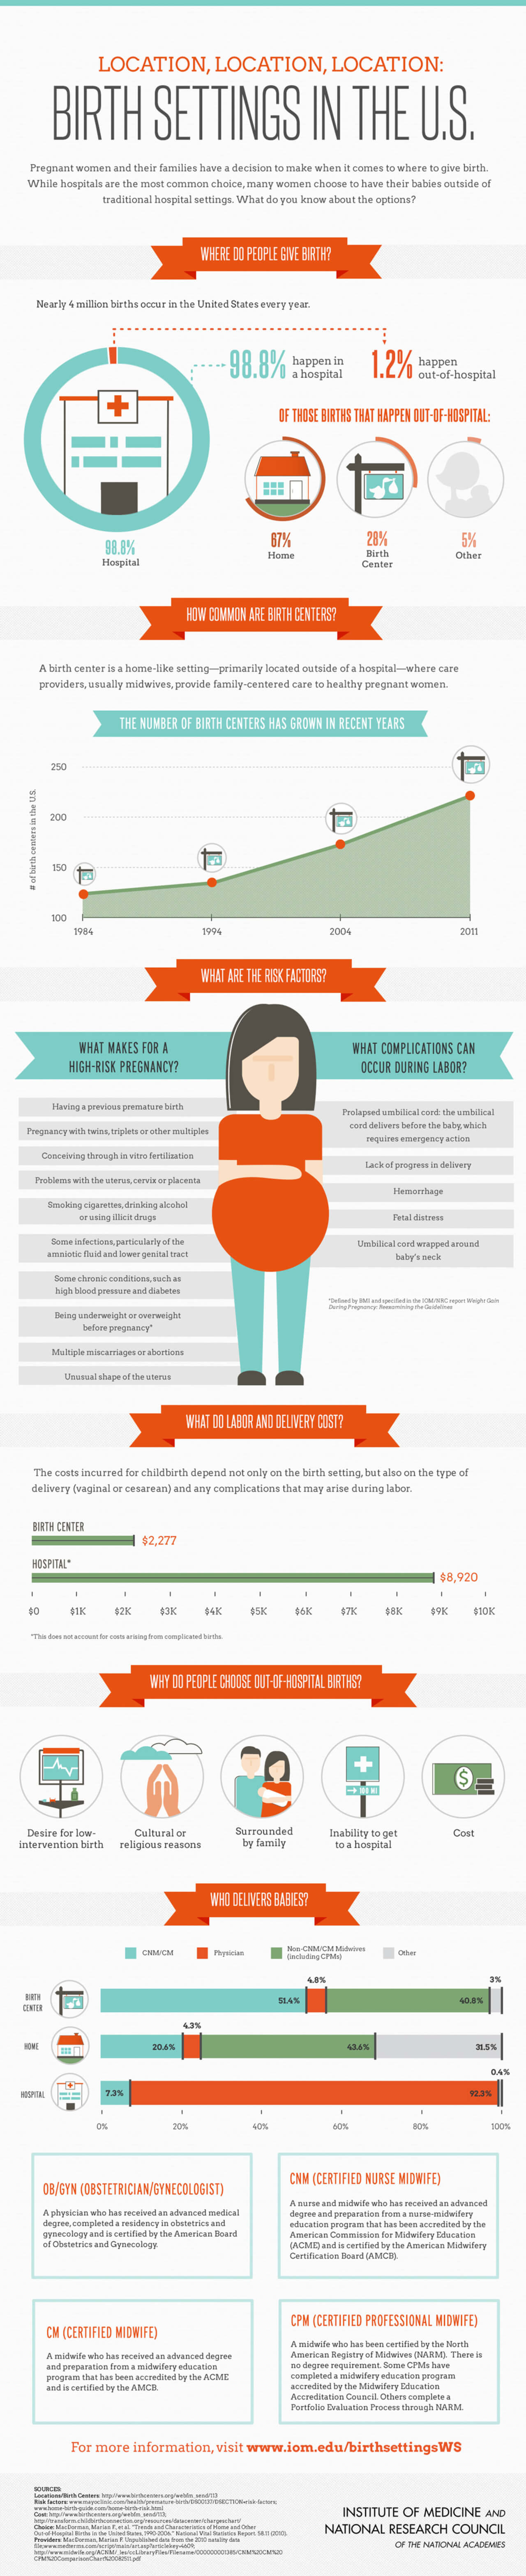 Best Infographics: Birth Settings in the U.S.